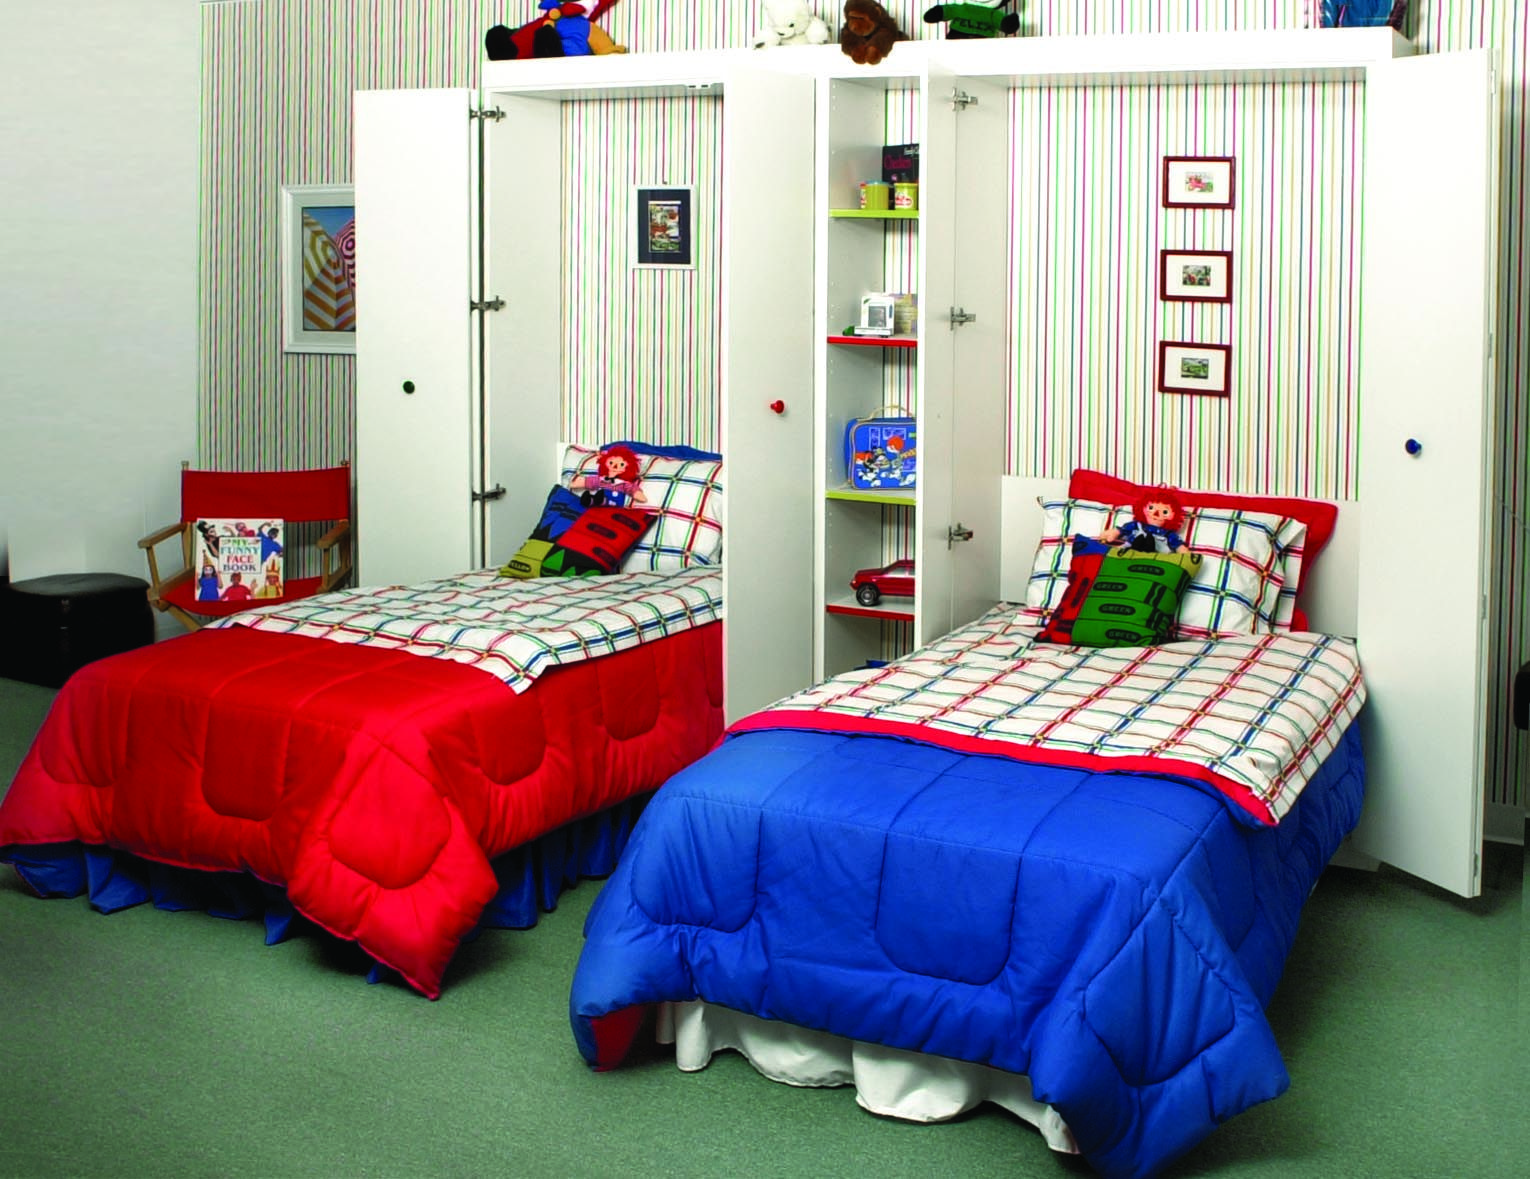 Small Kids Bed Beauteous Spacesaving Kids Beds  Kids Bed Design Bed Design And Murphy Bed Design Inspiration